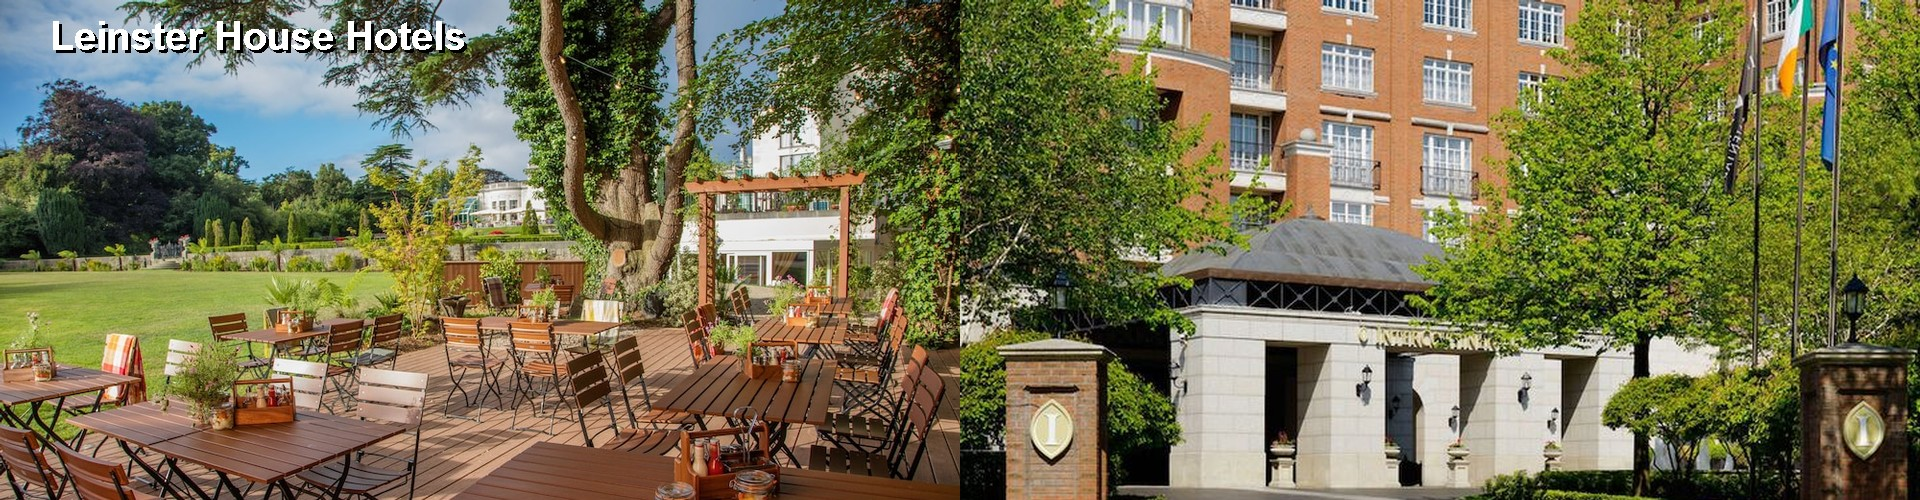 5 Best Hotels near Leinster House